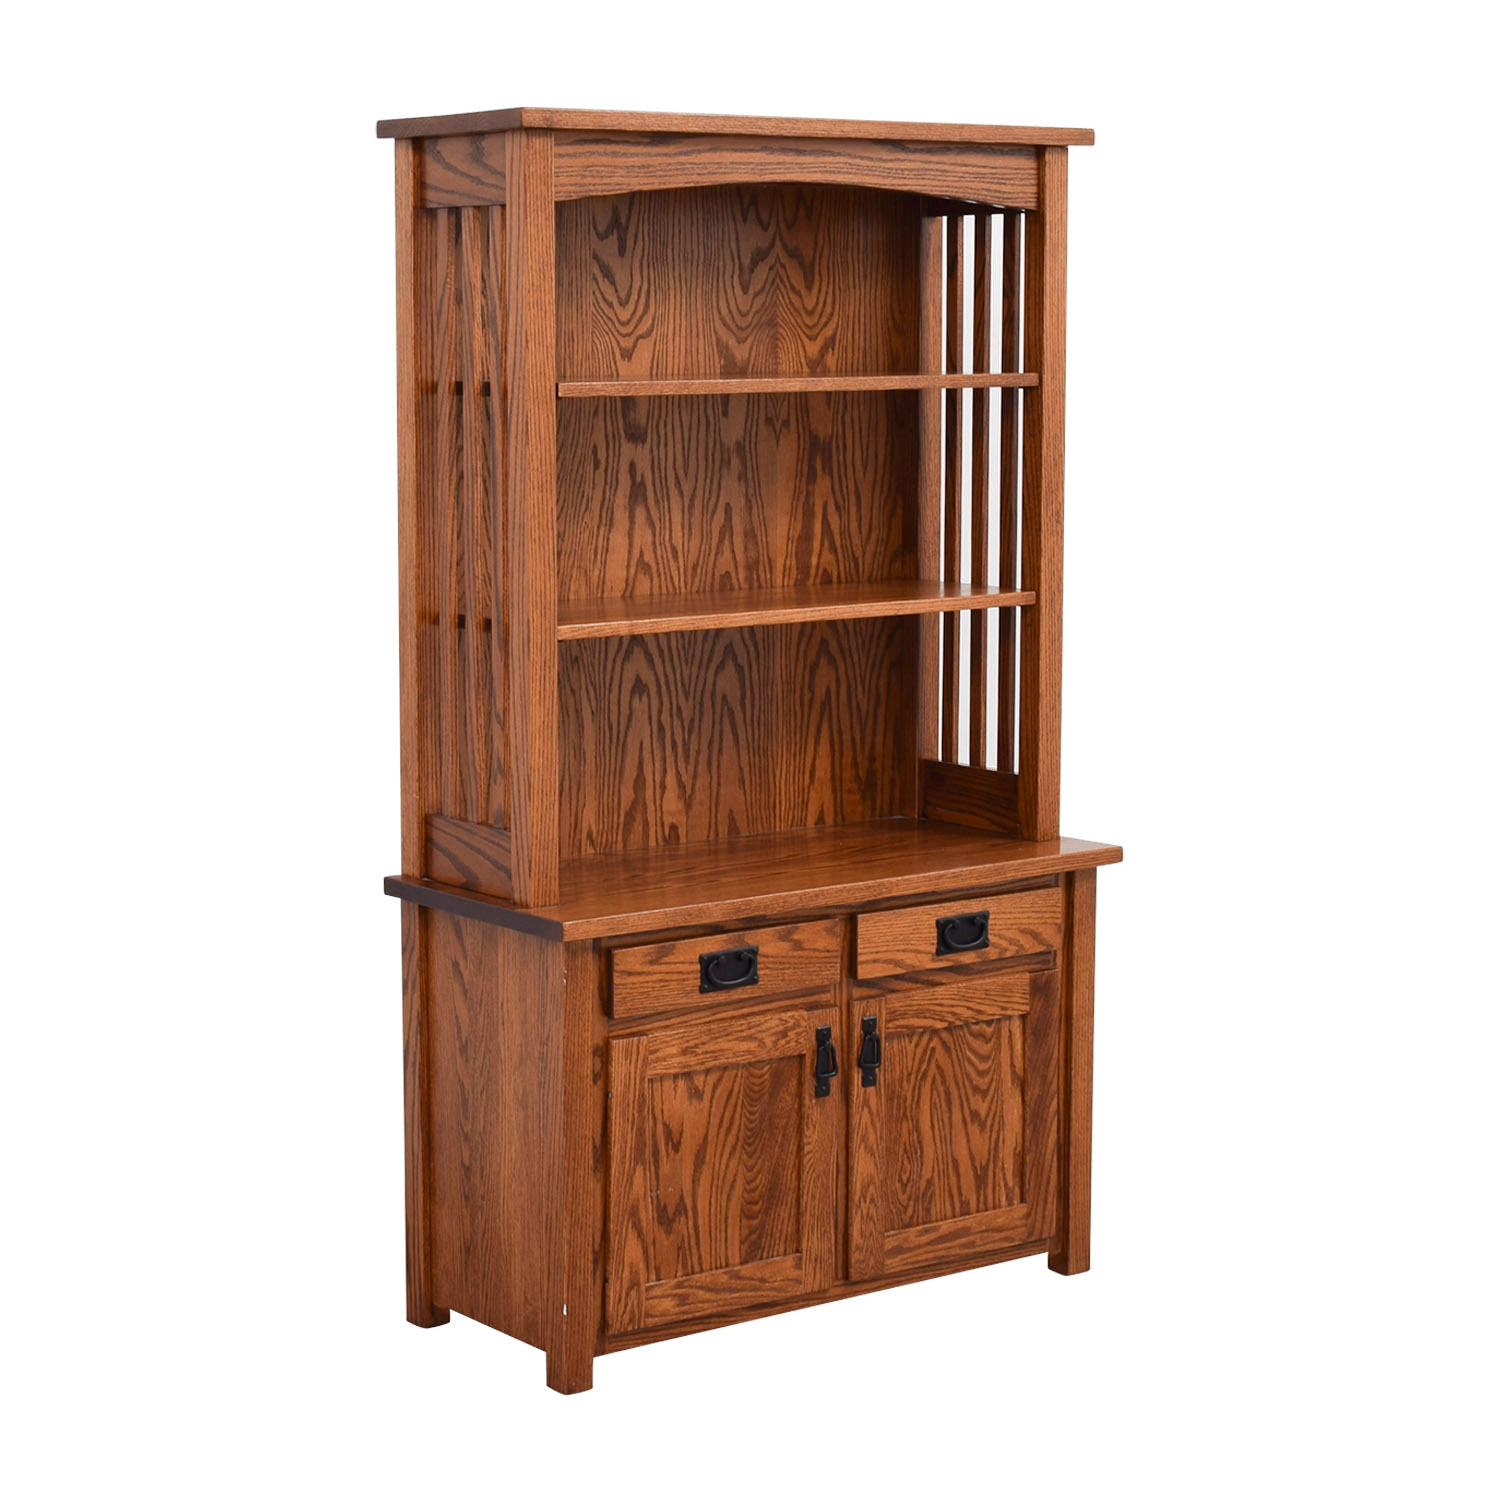 Second hand Bookcases & Shelving under $500